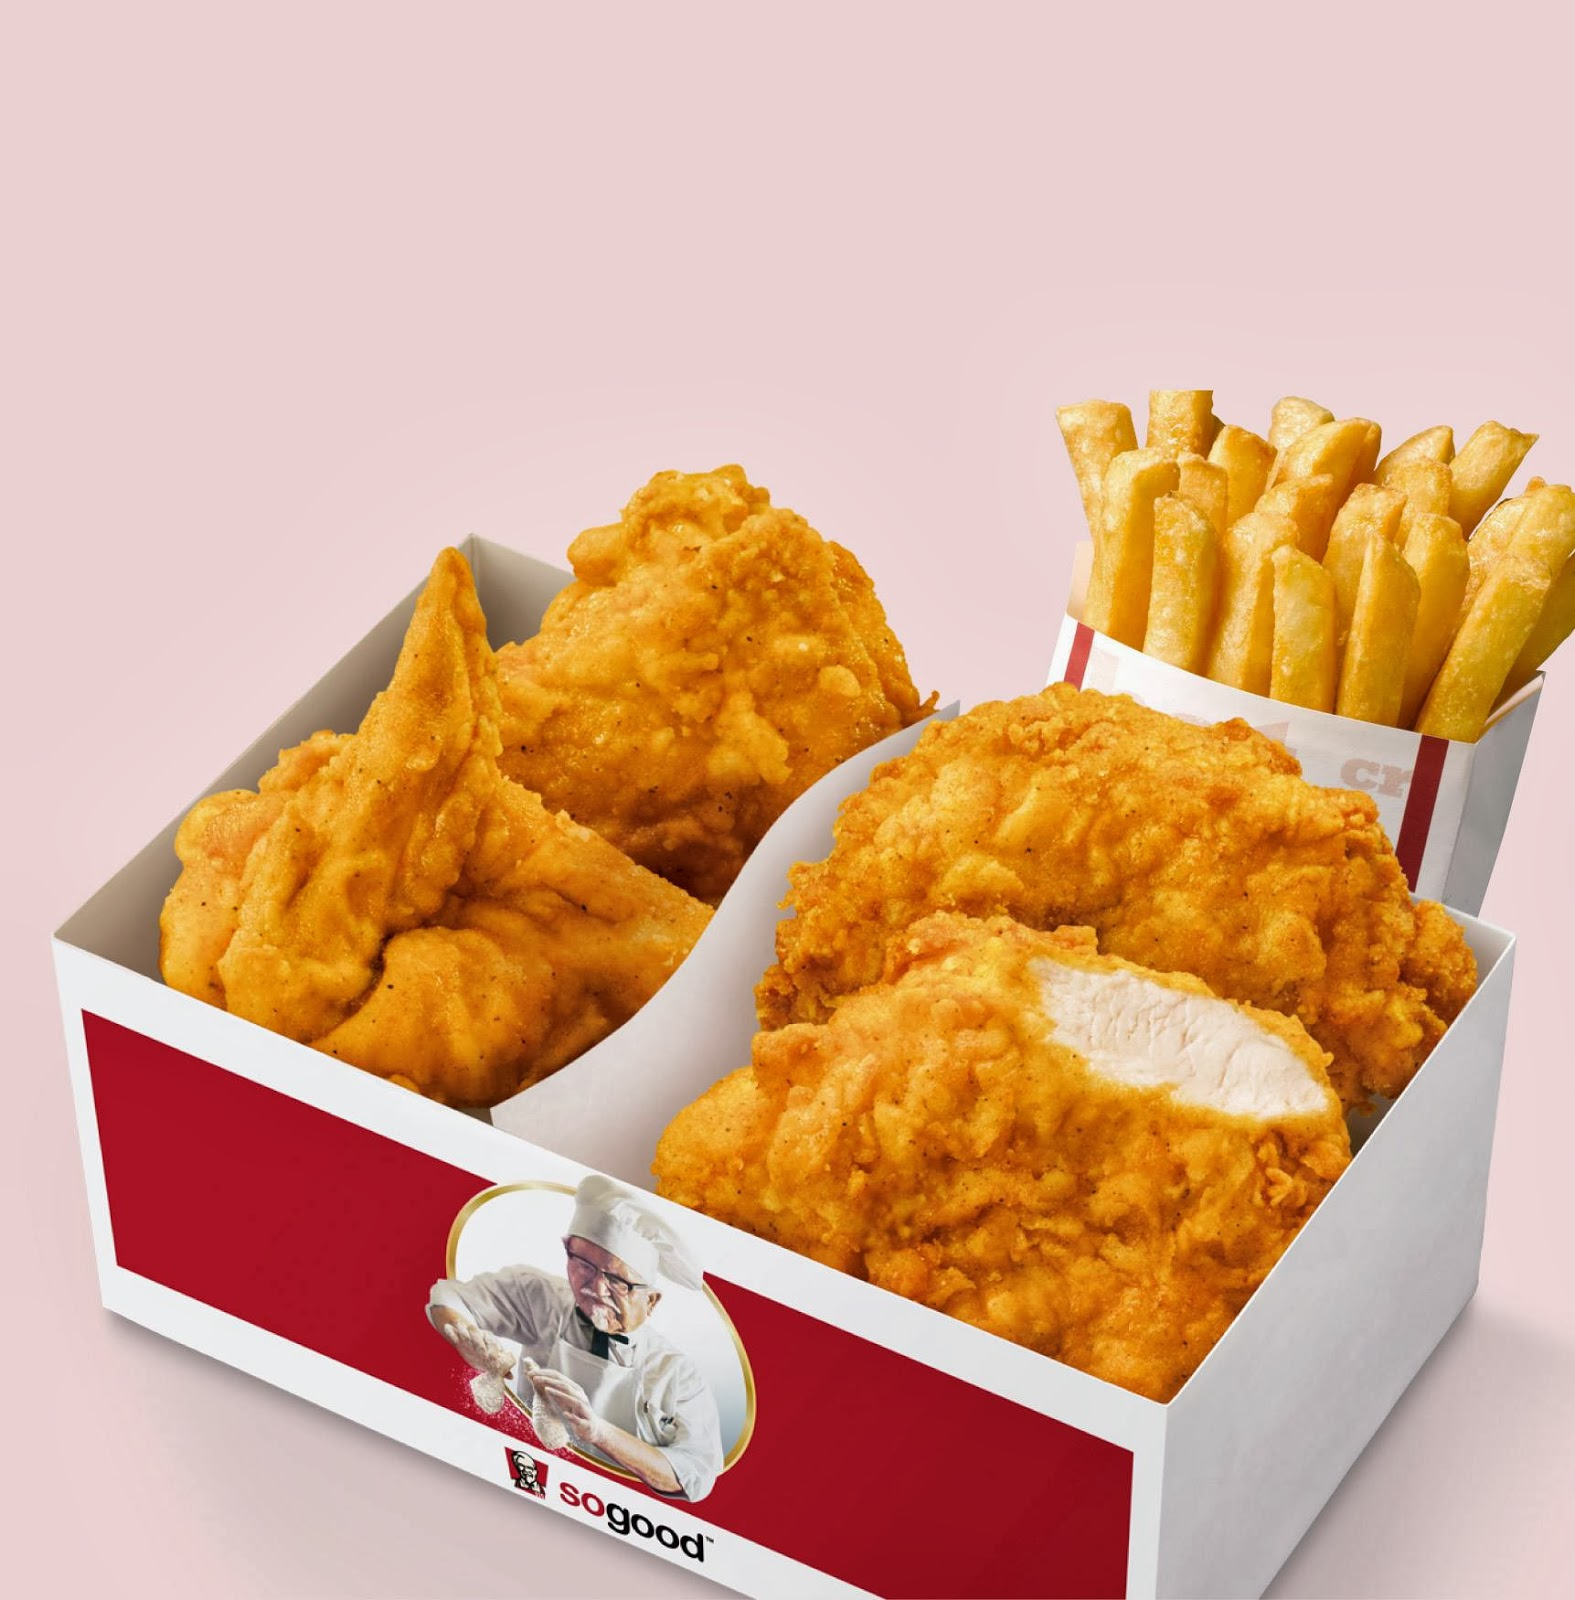 organizational structure of kentucky fried chicken Kfc corporation, or kfc, founded and also known as kentucky fried chicken, is a chain of fast food restaurants based in louisville, kentucky kfc is a brand and operating segment, called a concept of yum.